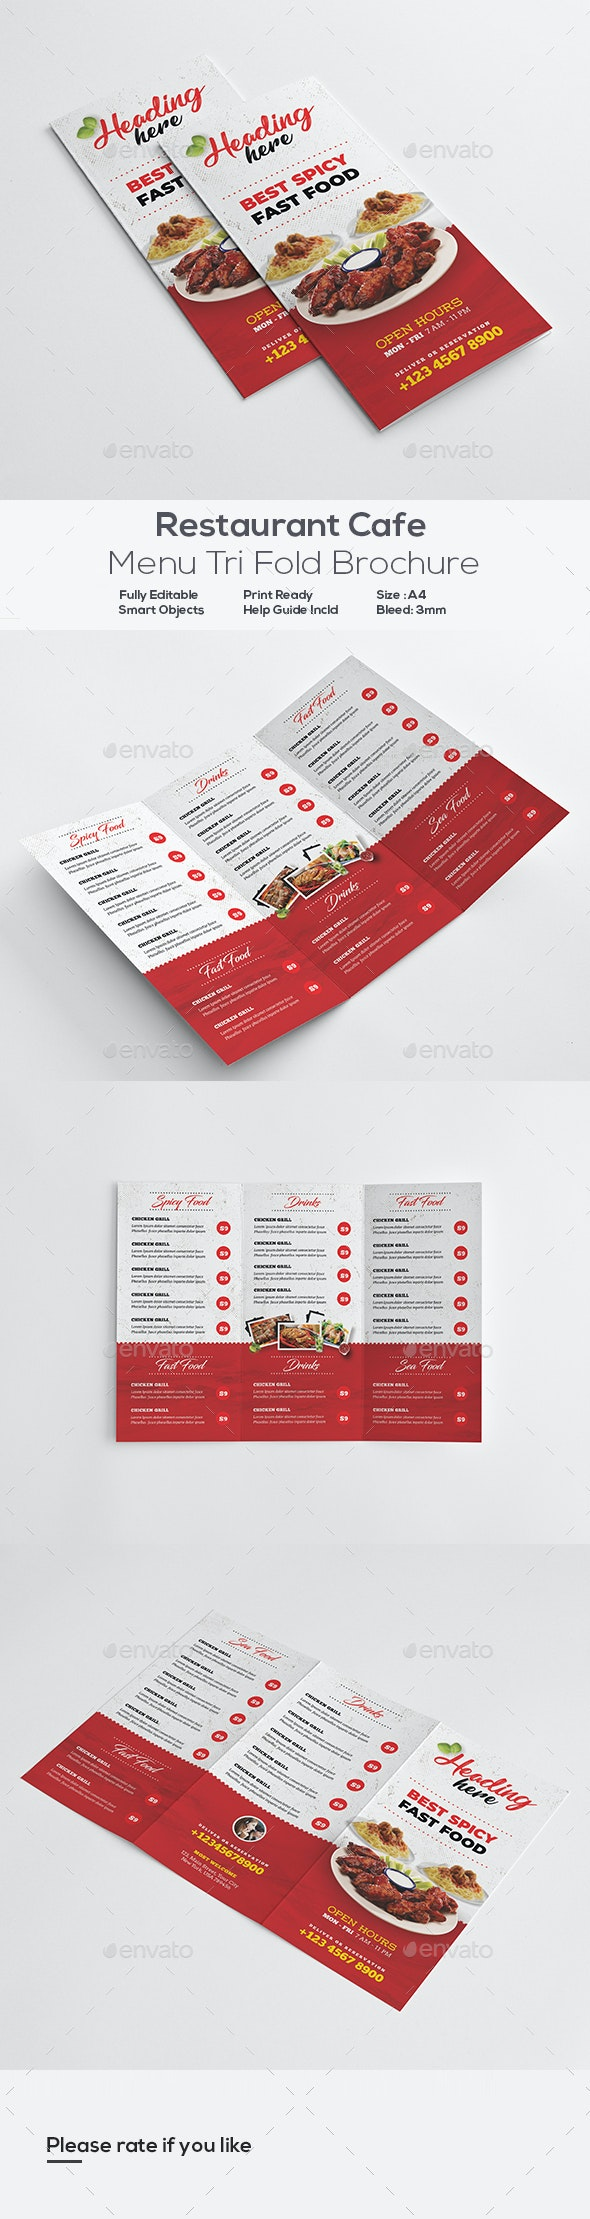 Restaurant Menu Trifold Brochure - Food Menus Print Templates